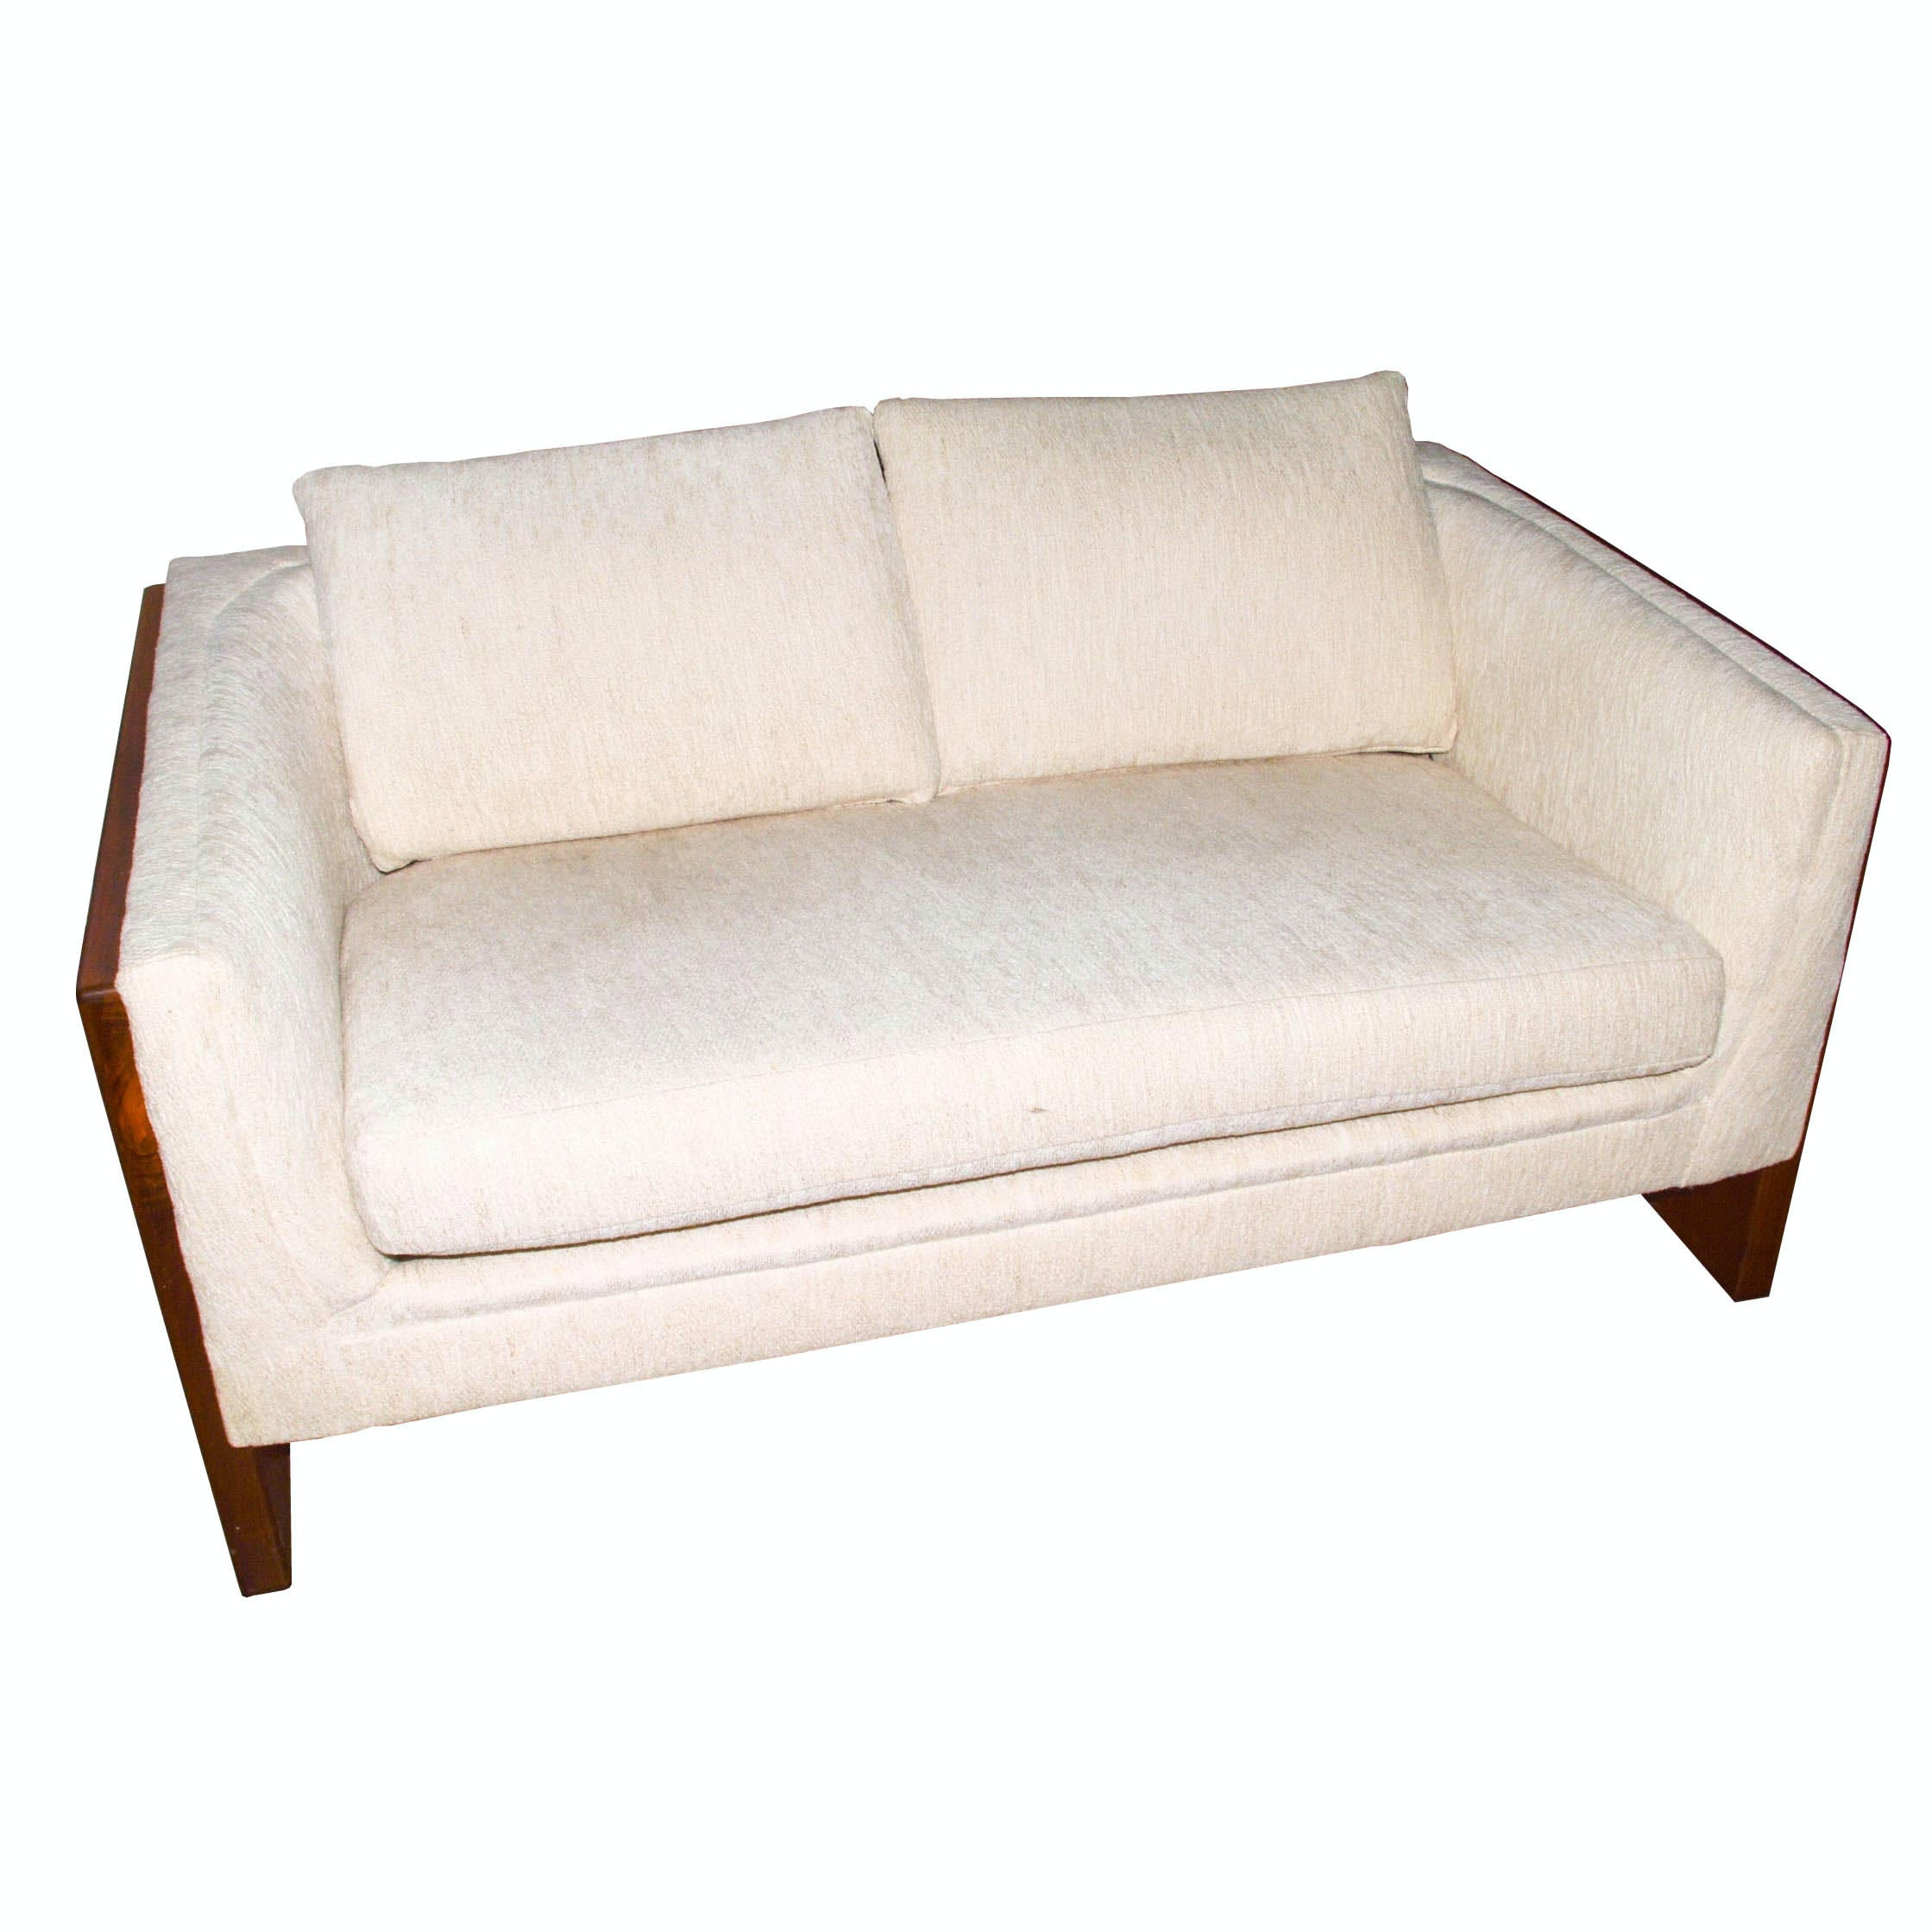 Danish Modern Upholstered Love Seat